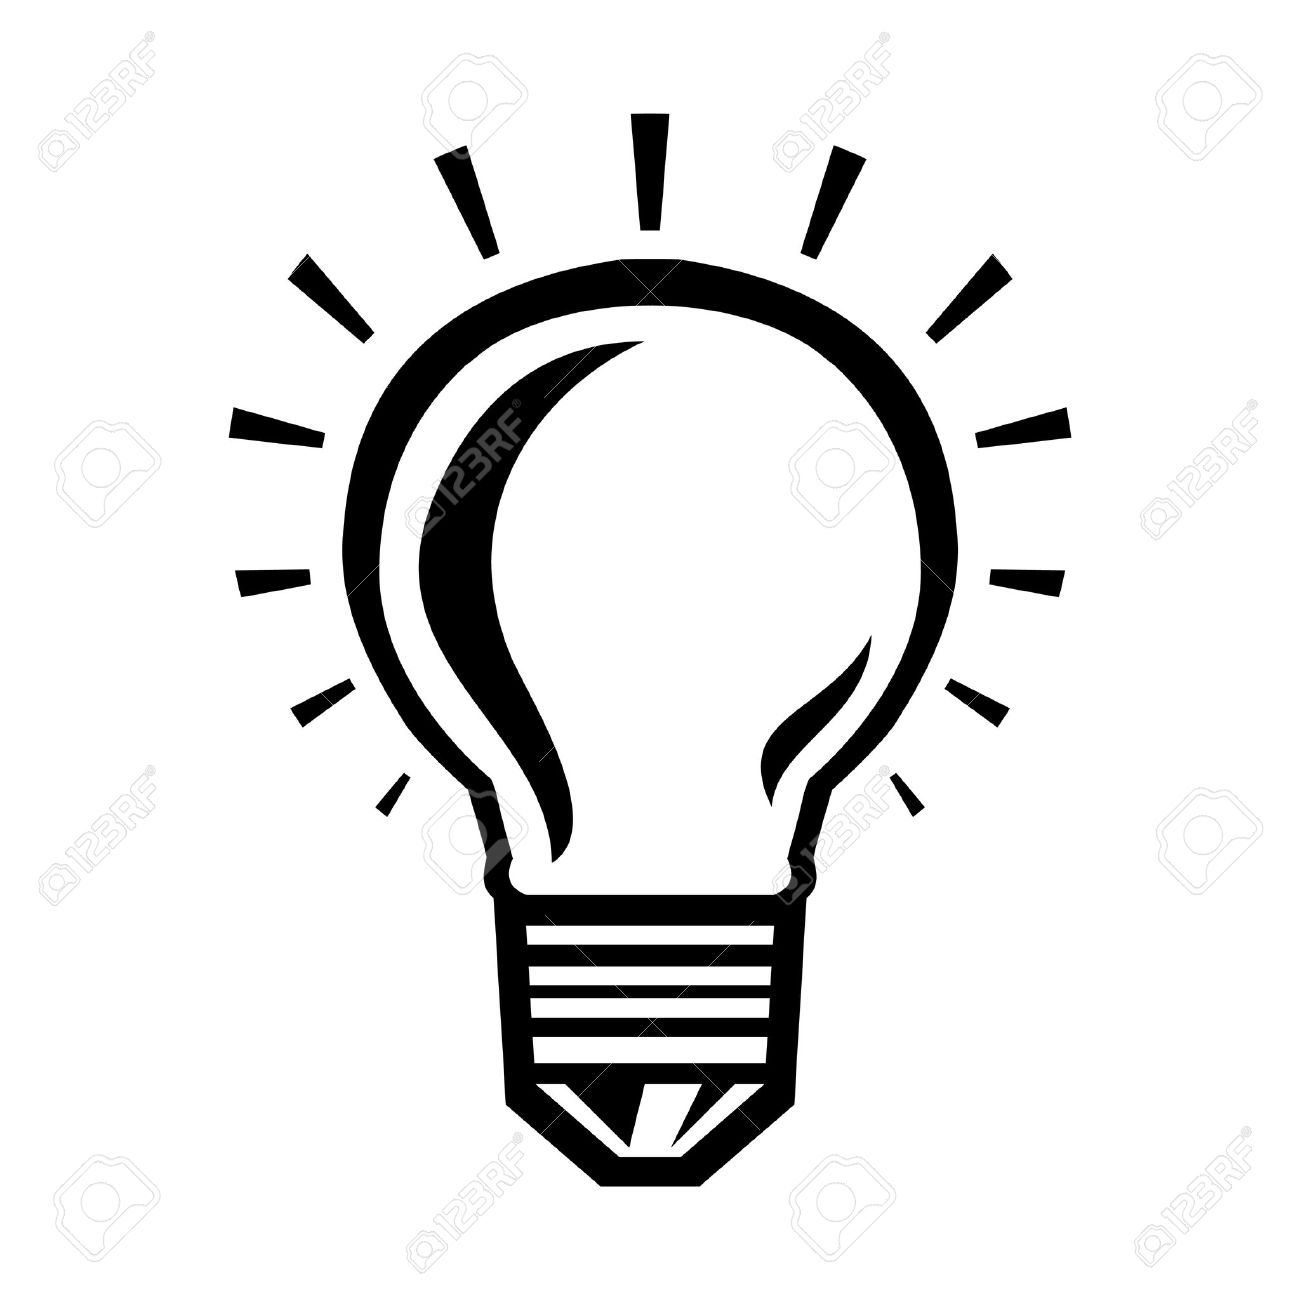 lightbulb vector icon royalty free cliparts vectors and stock rh 123rf com vector light bulb outline vector light bulb outline